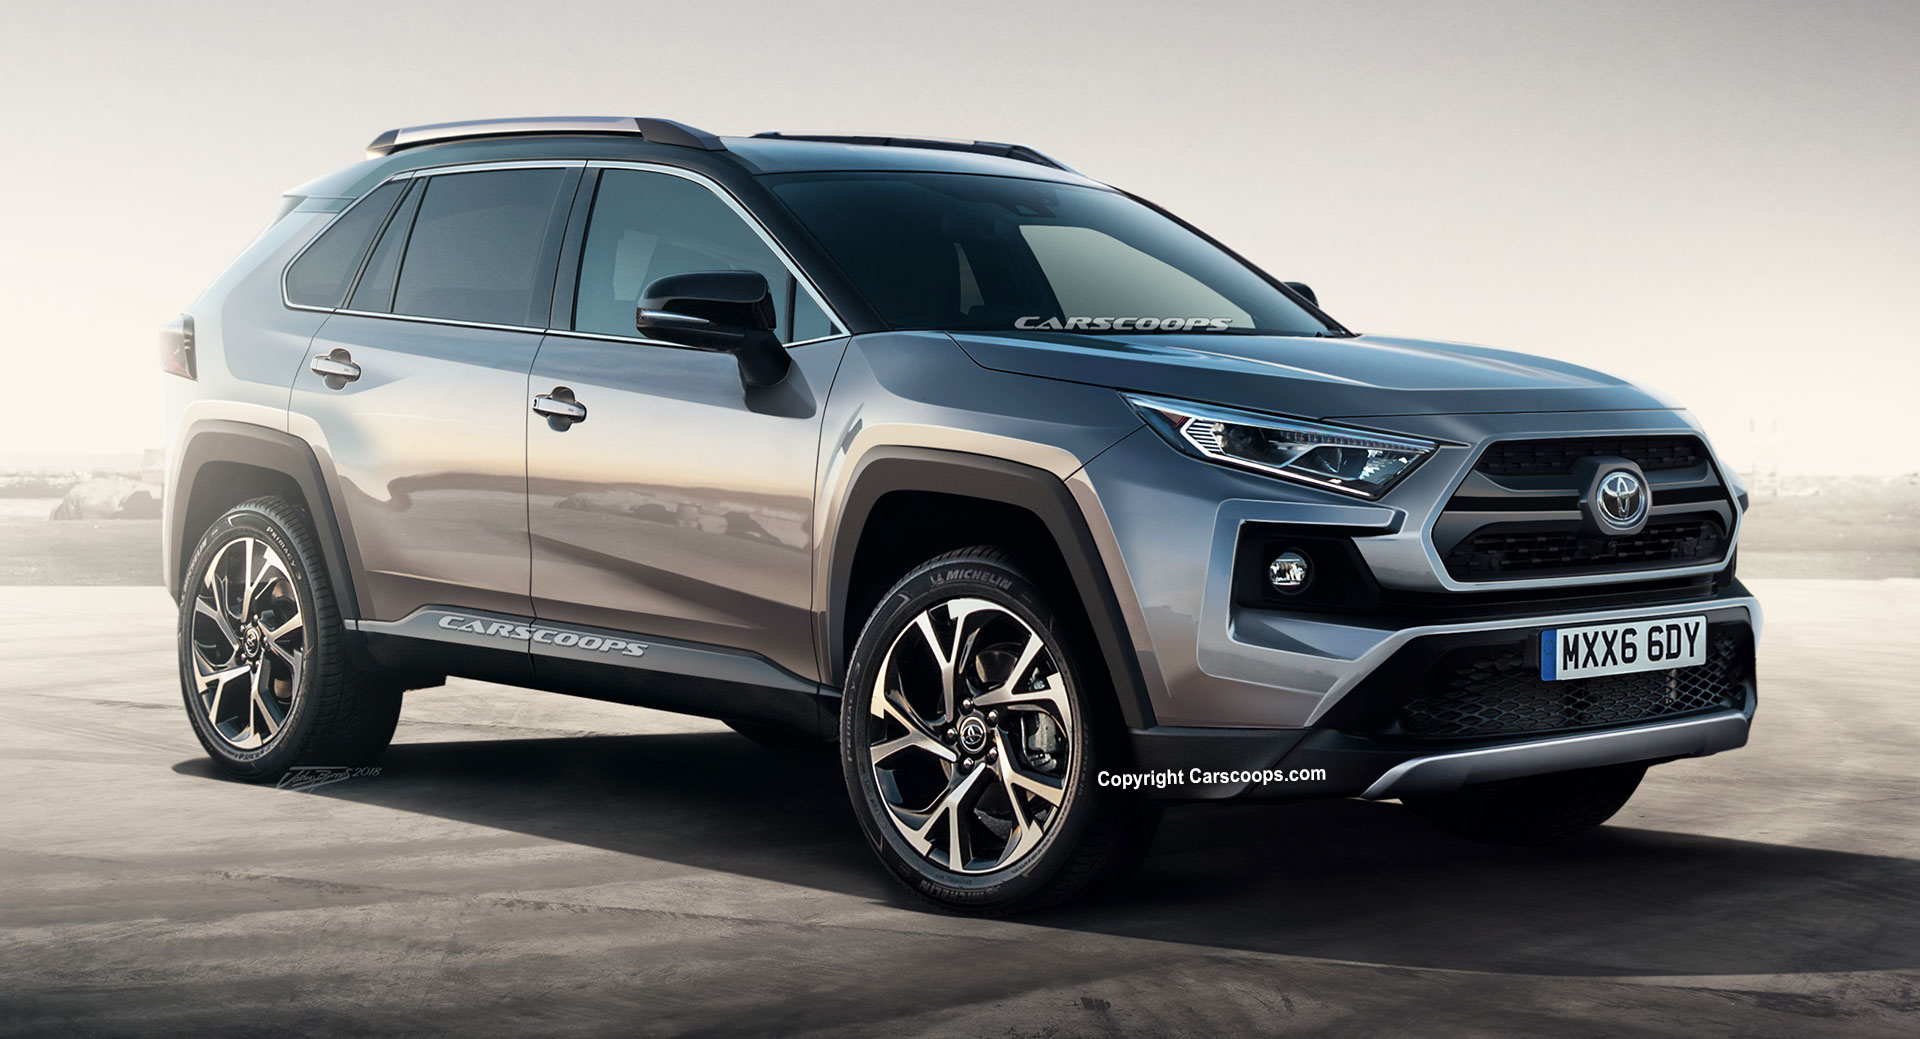 What Do You Highlander Owners Think Of The Upcoming Rav4